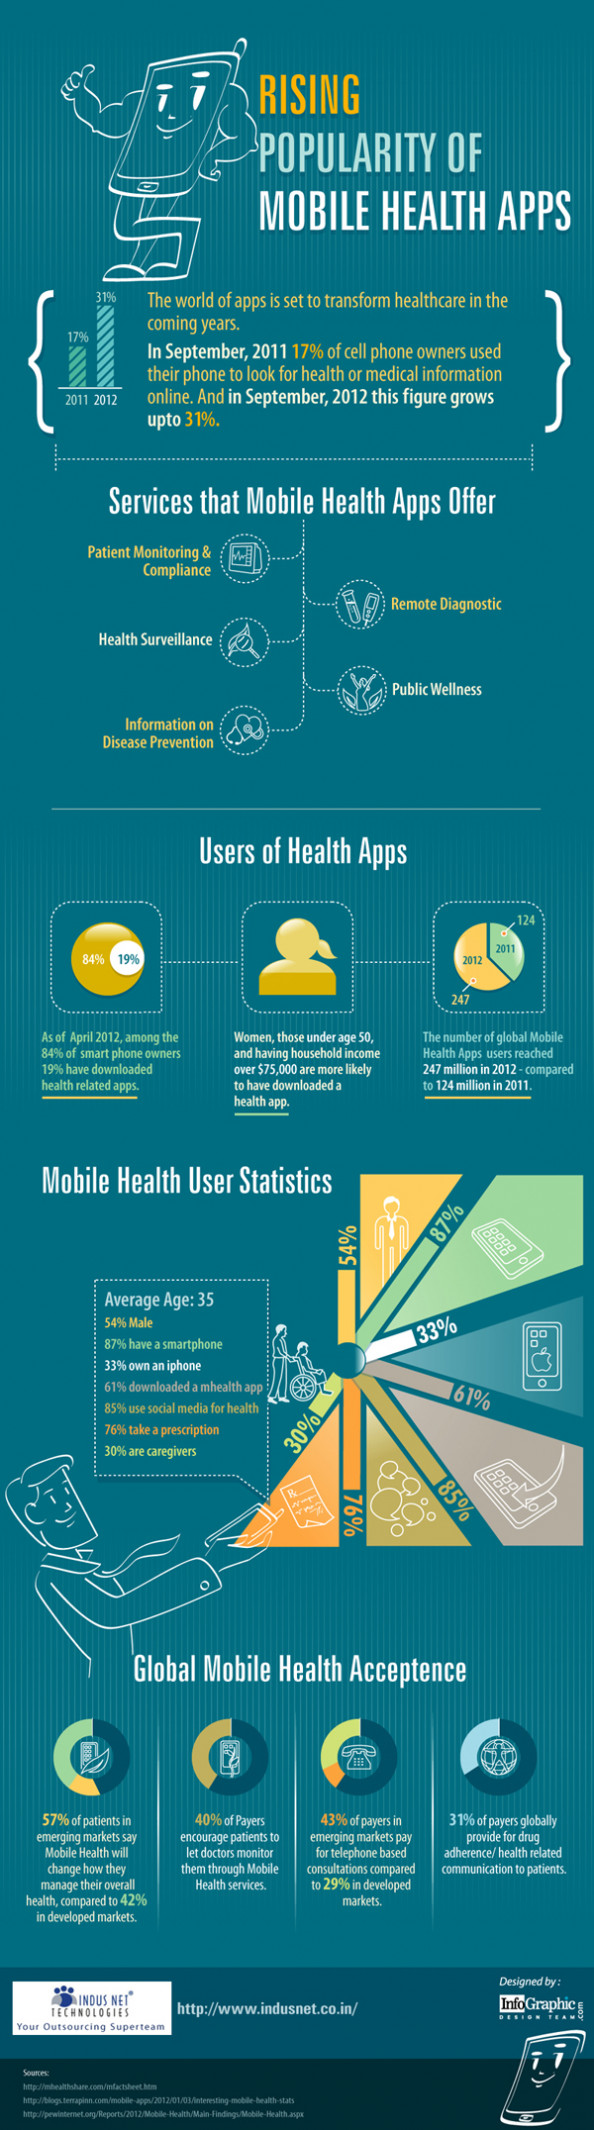 Rising Popularity of Mobile Health Apps